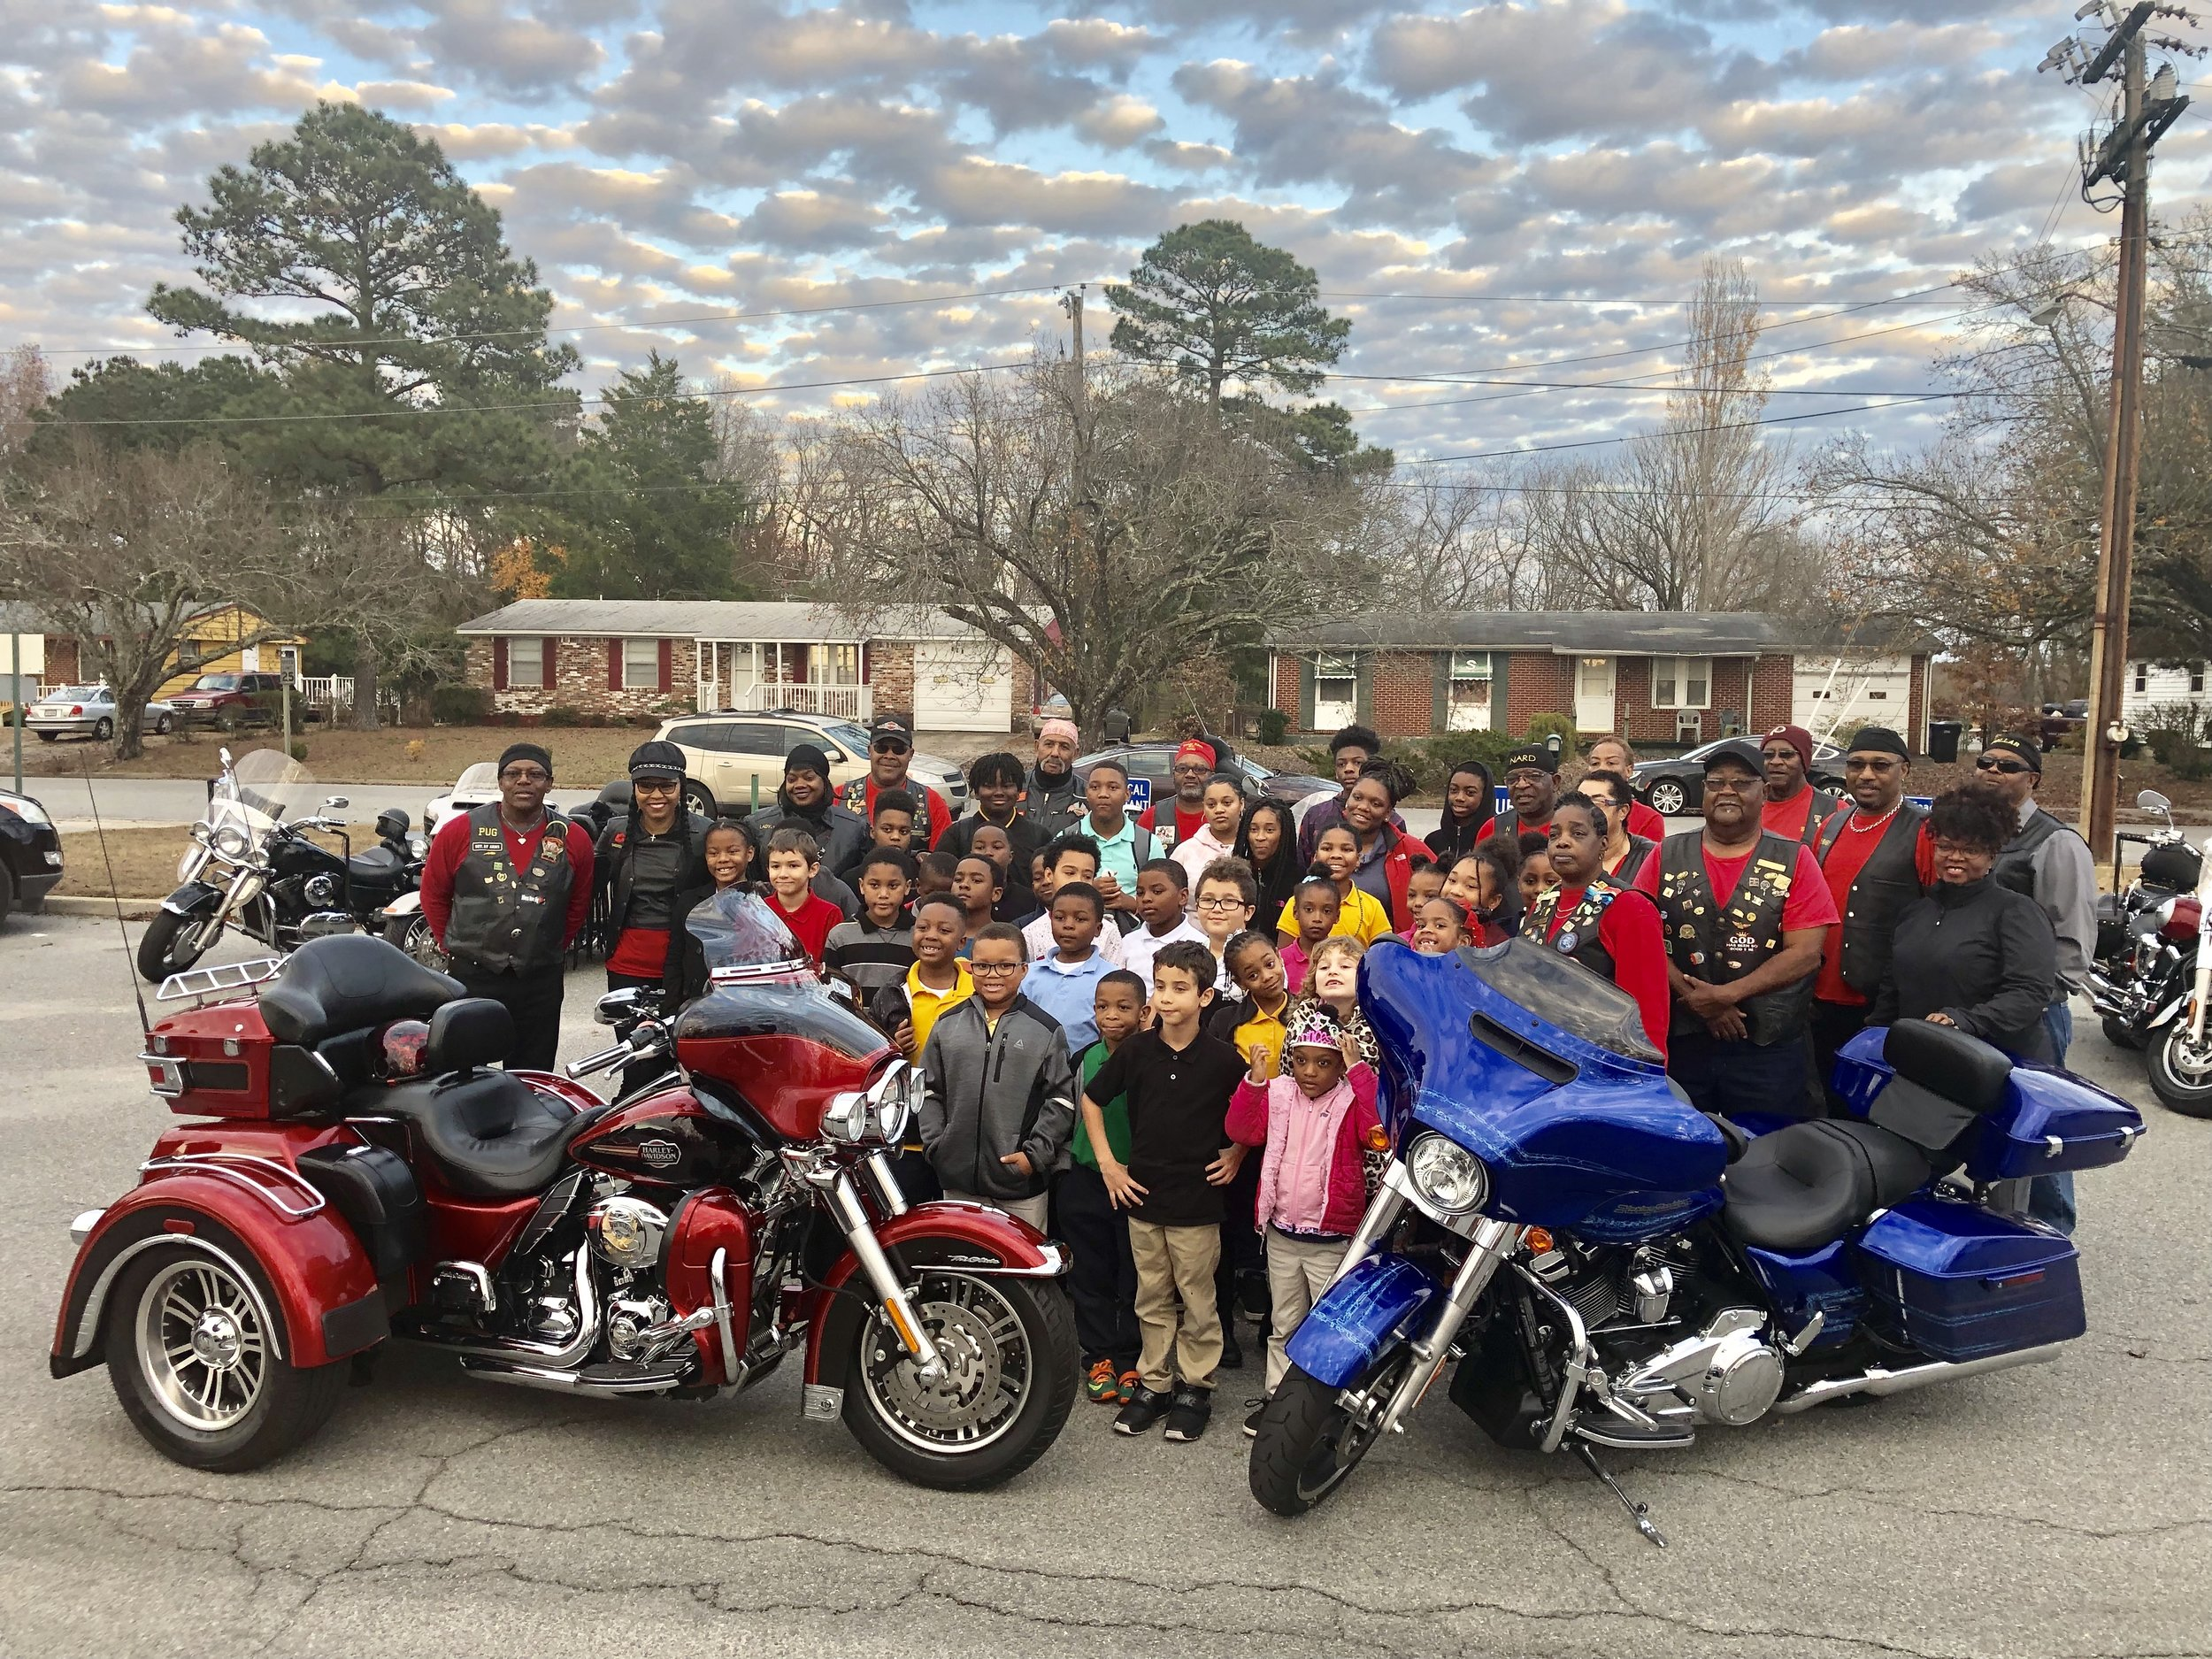 Motorcyle Club 1 Group Photo.jpg